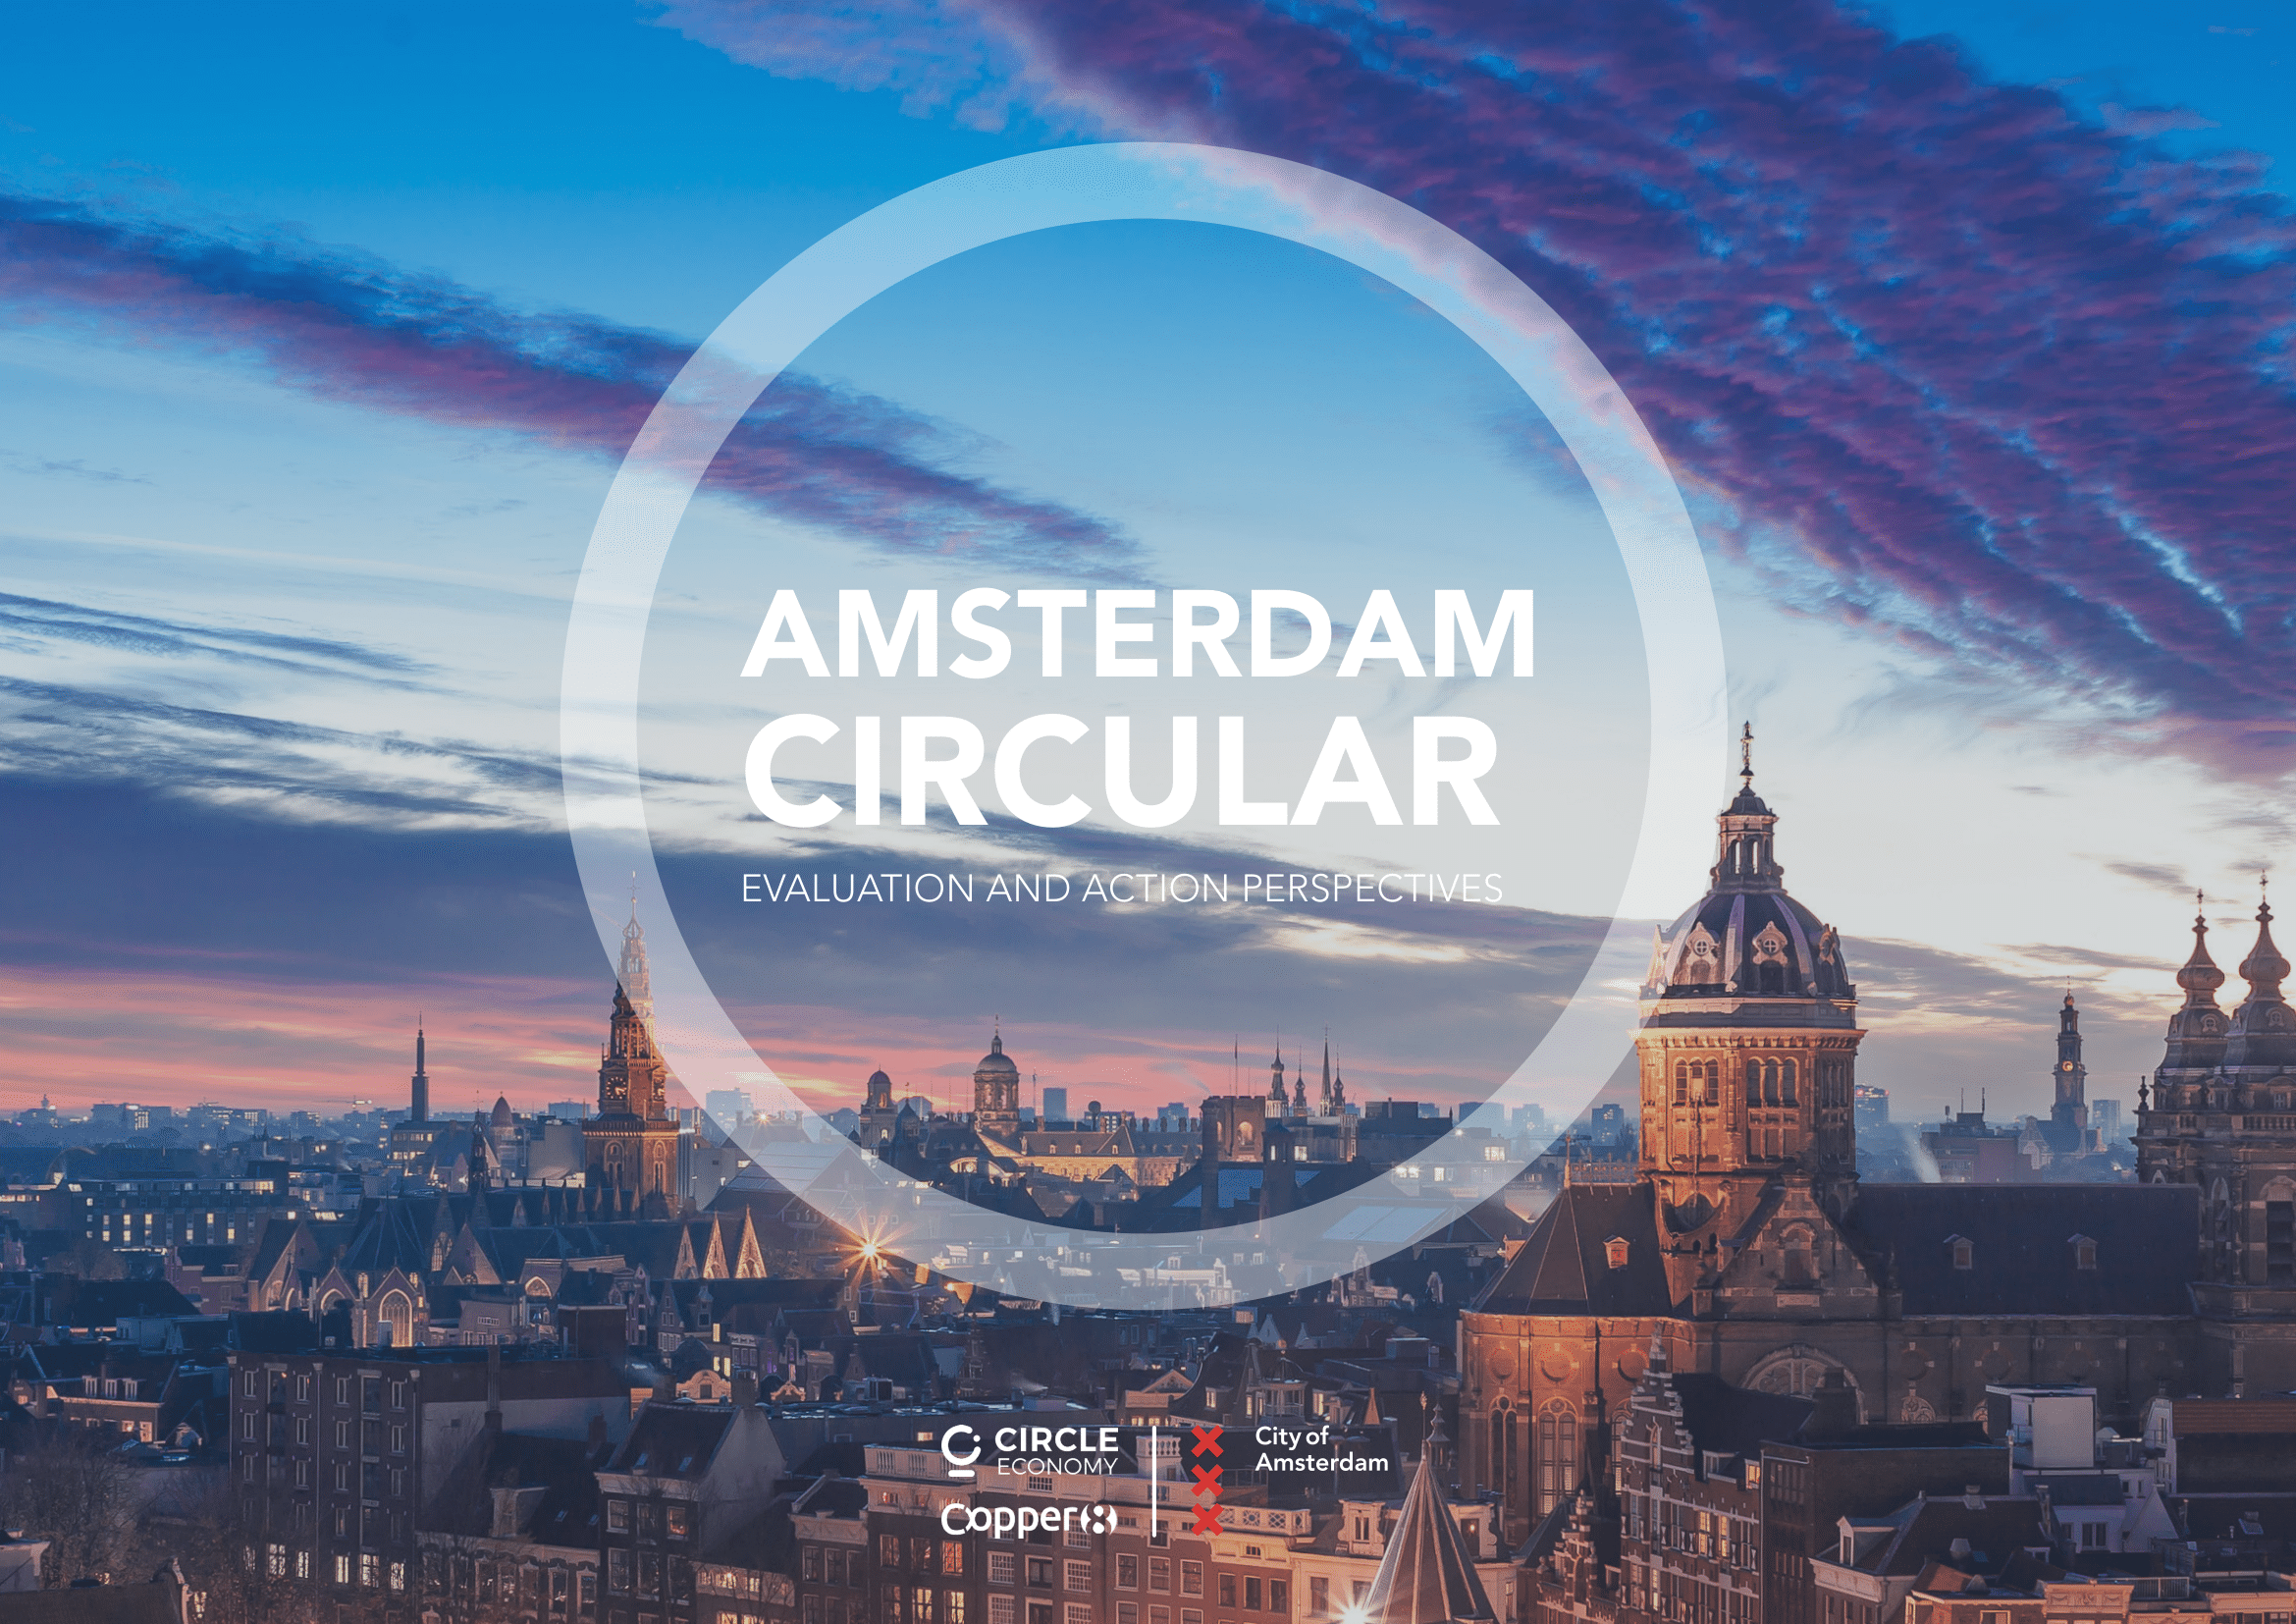 Amsterdam Circular Evaluation And Action Perspectives Insights Circle Economy